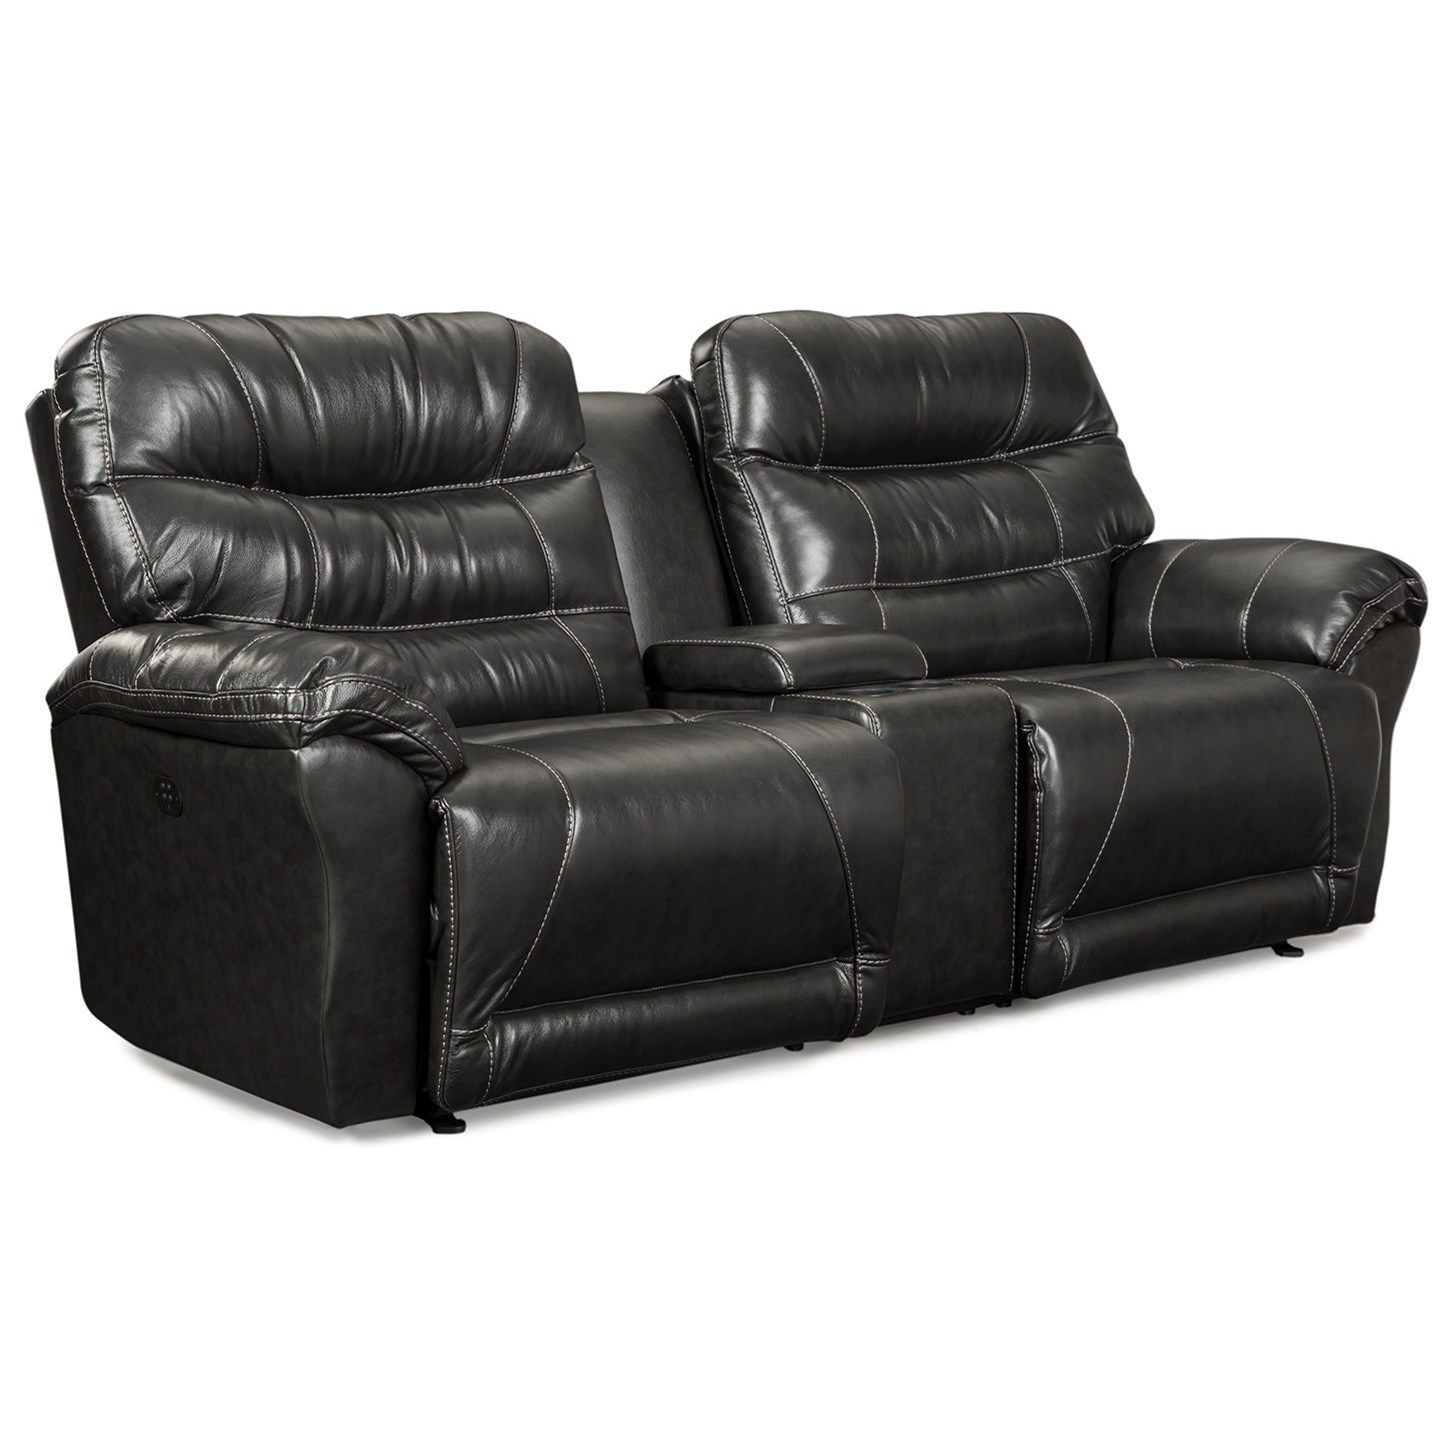 Best Home Furnishings ShelbySpace Saver Reclining Sofa W/ Console ...